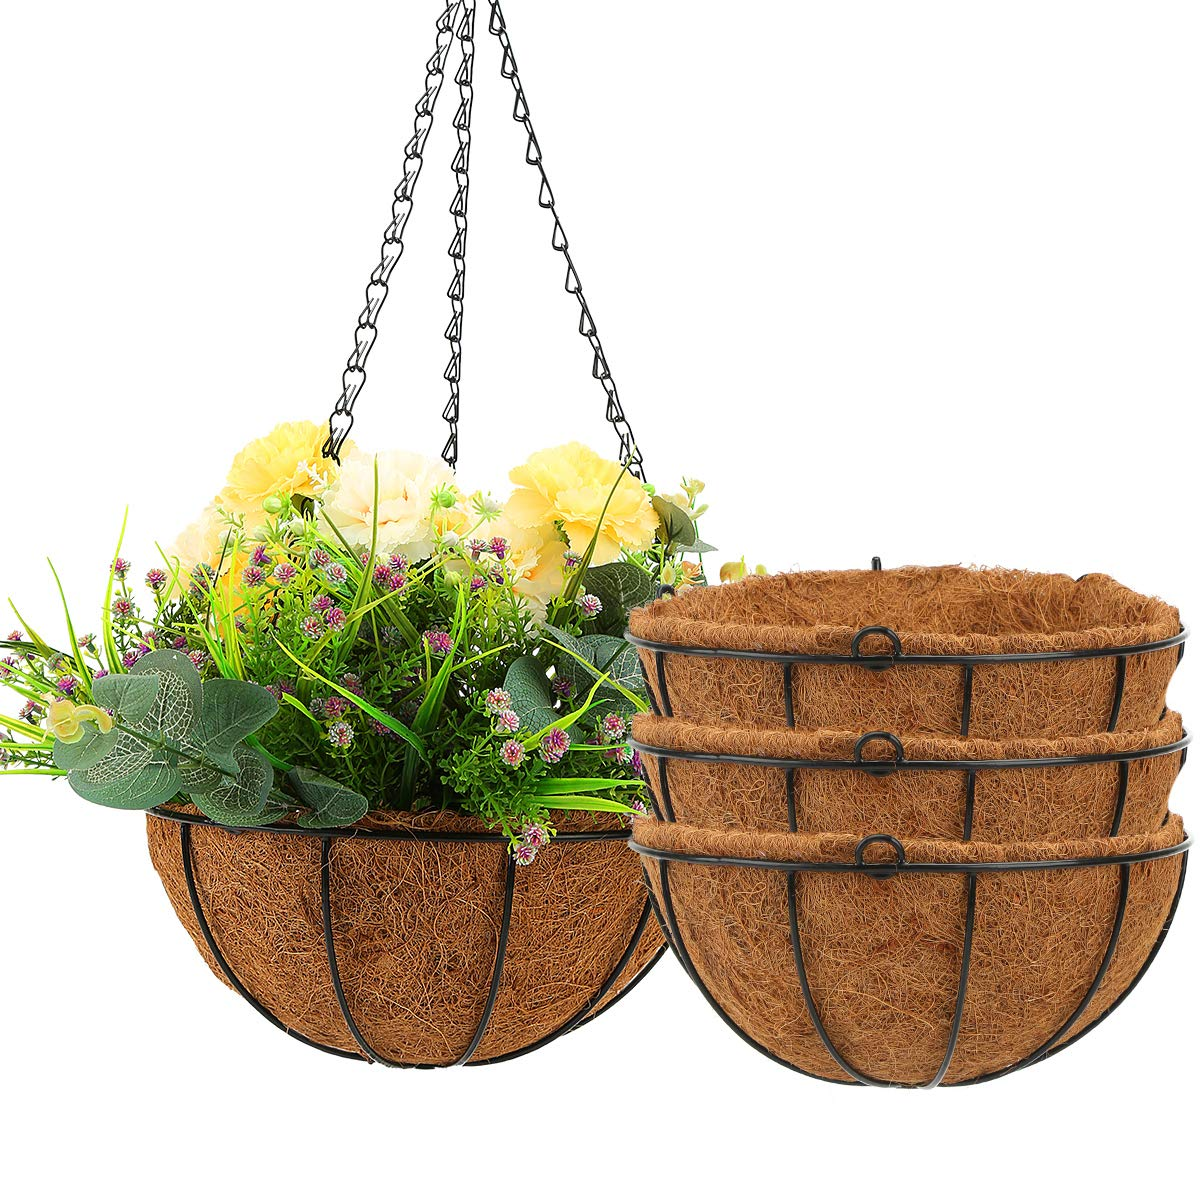 Amazon Com Angchun Hanging Planters For Outdoor Indoor Plants 4 Pack 10 Inch Metal Flower Pots With Coco Coir Liners Wire Plant Holder With Hanger For Patio Porch Garden Decoration Watering Hanging Baskets